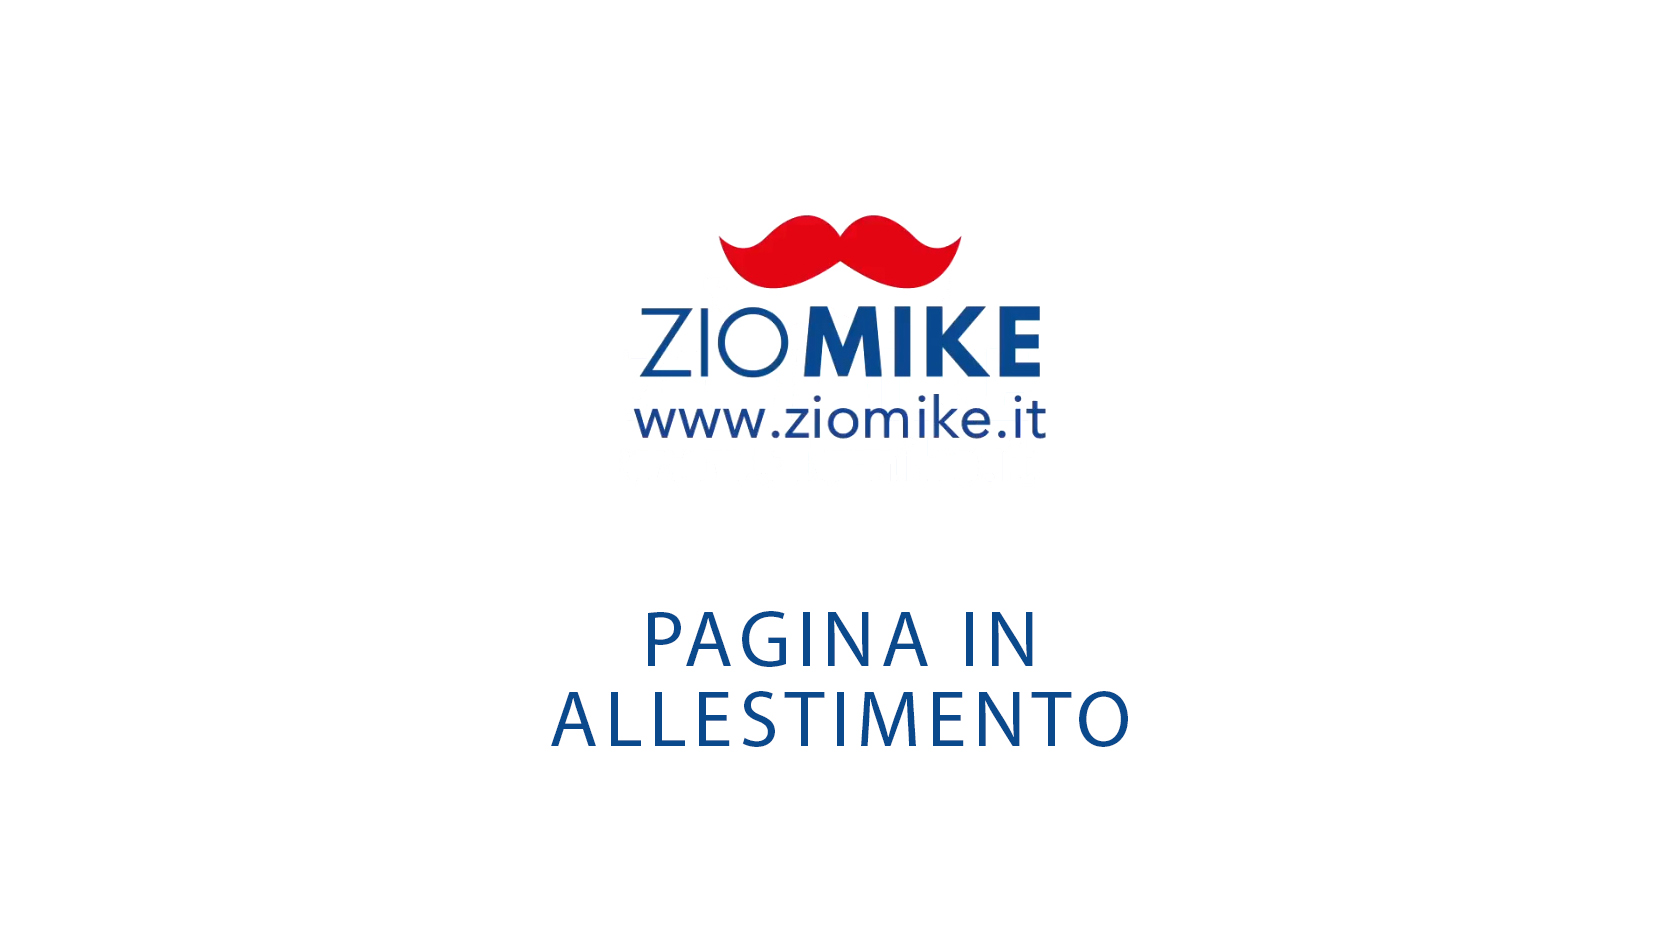 //www.ziomike.it/wp-content/uploads/2017/11/pagina_in_allestimento.jpg